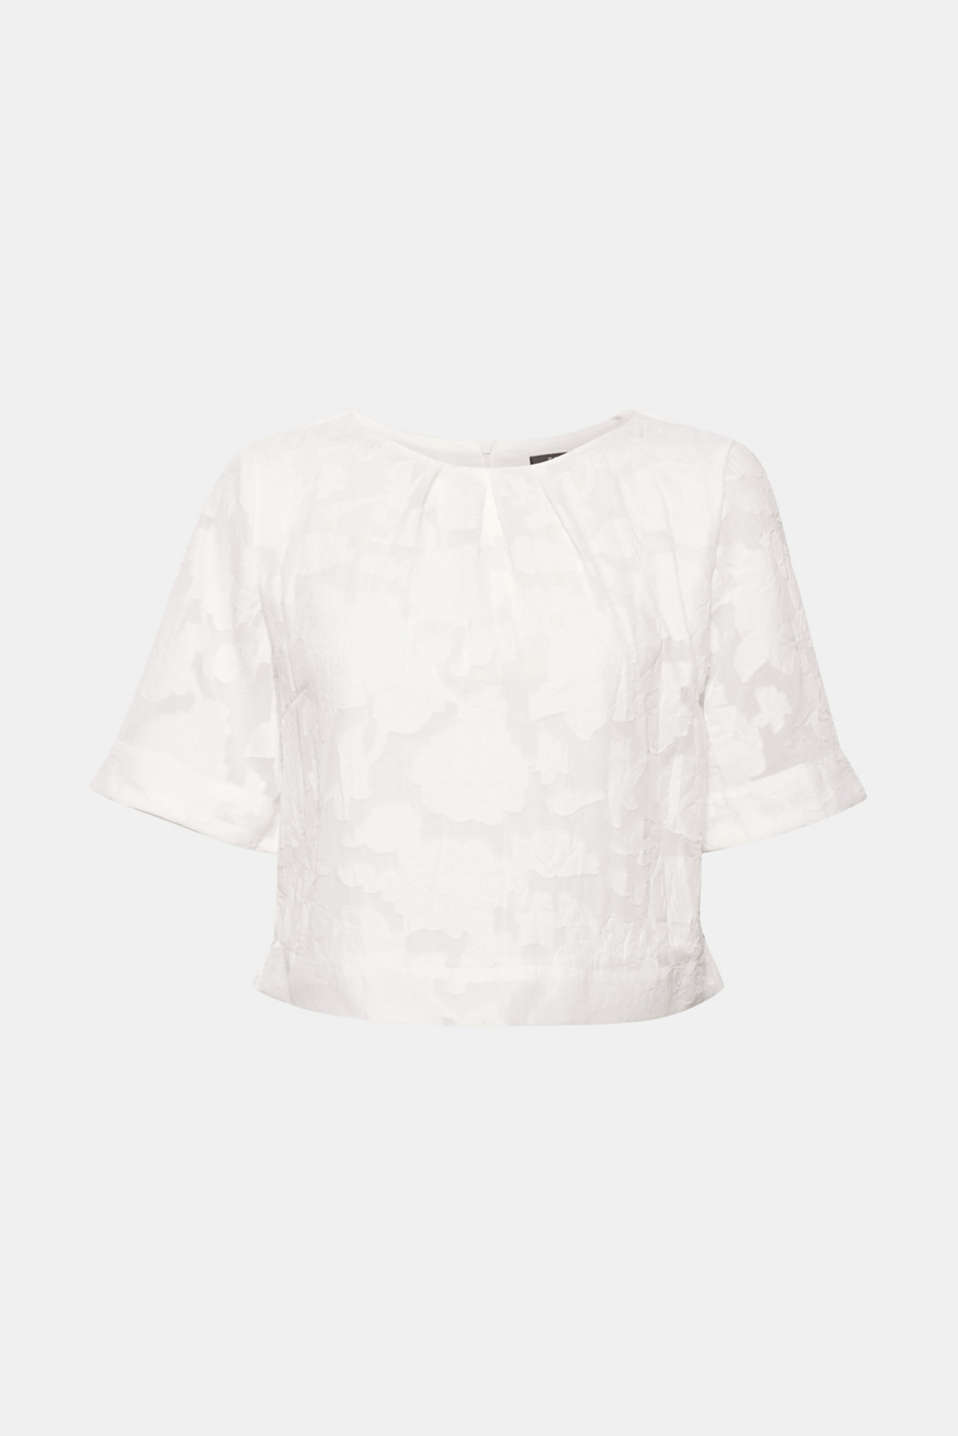 Fashion piece: the short, boxy cut and semi-sheer material with burnt-out flowers makes this blouse top irresistible!